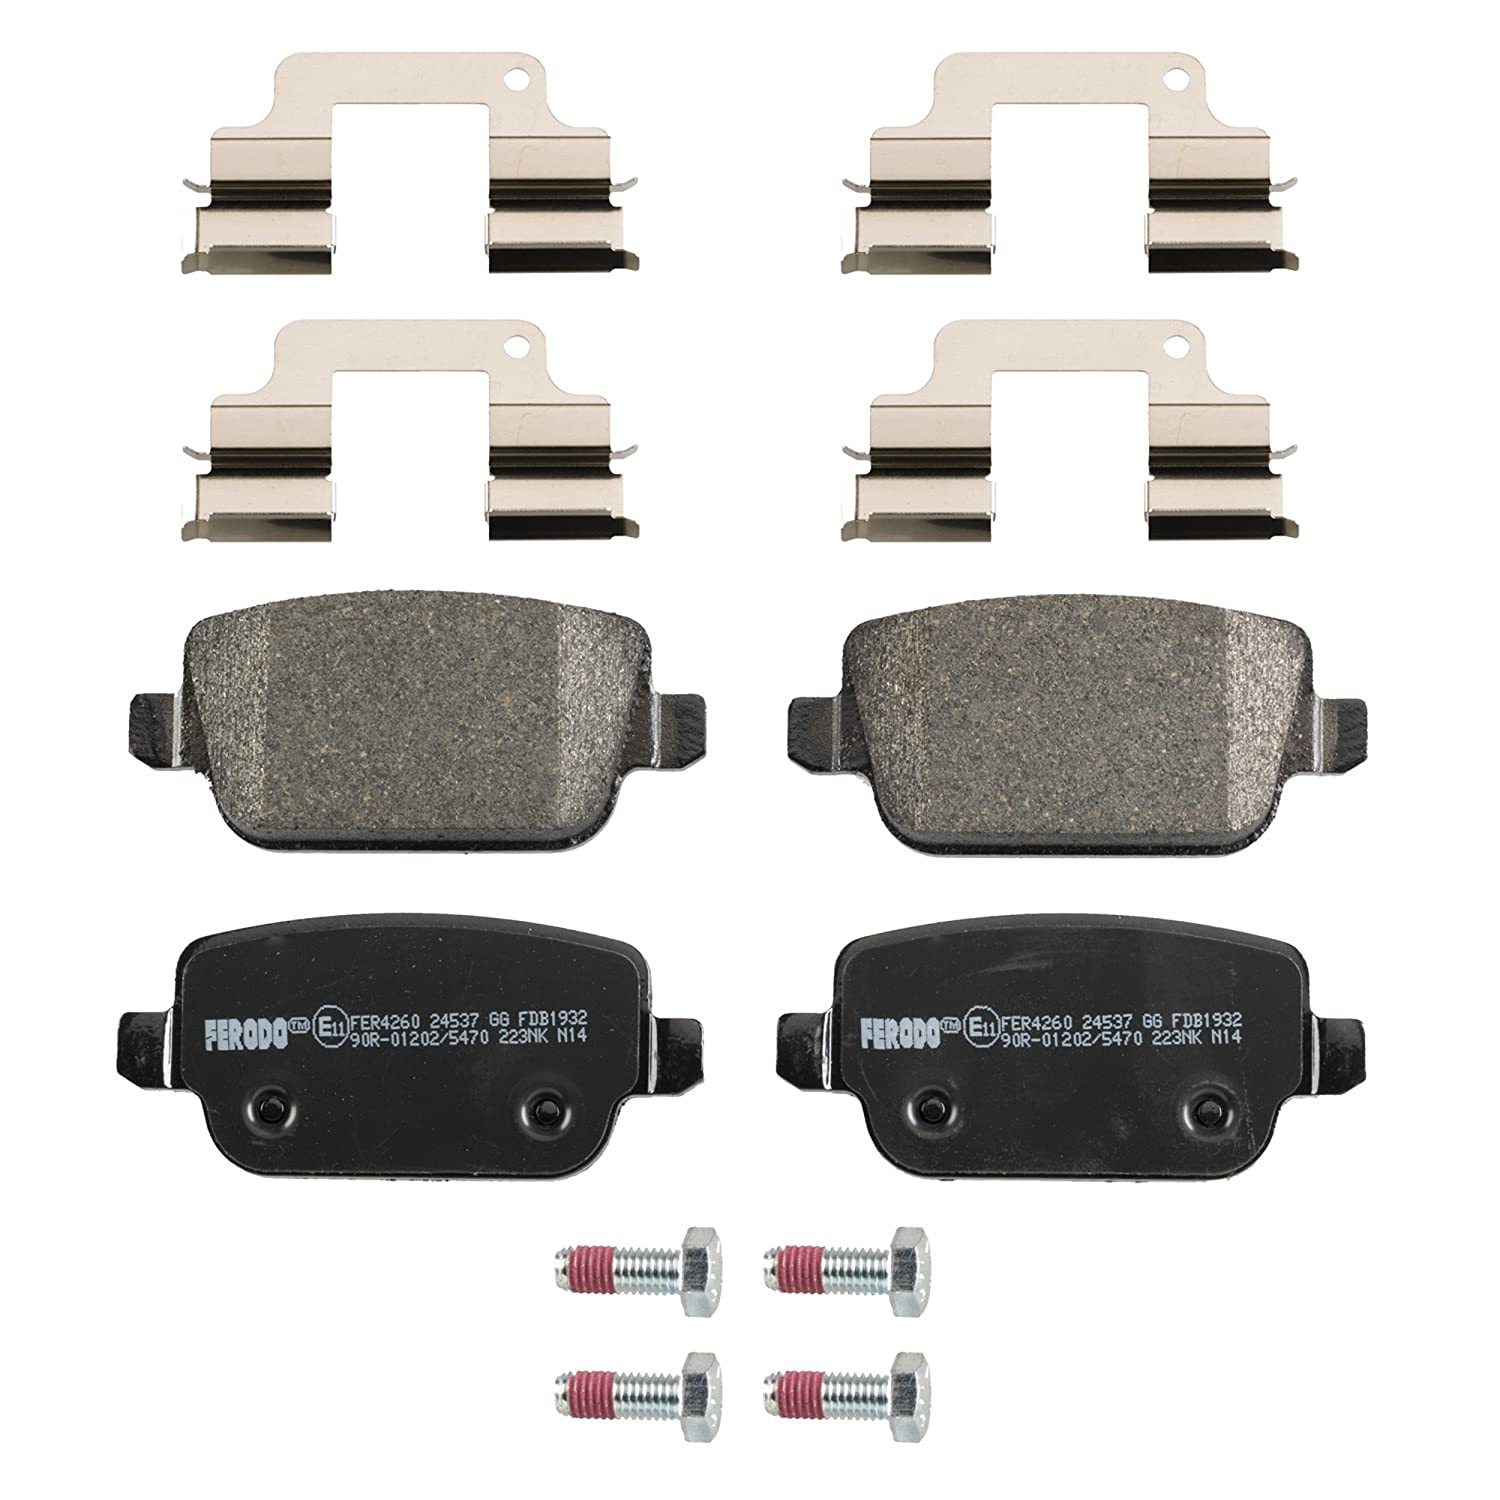 StopTech 934.44094 Street Axle Pack